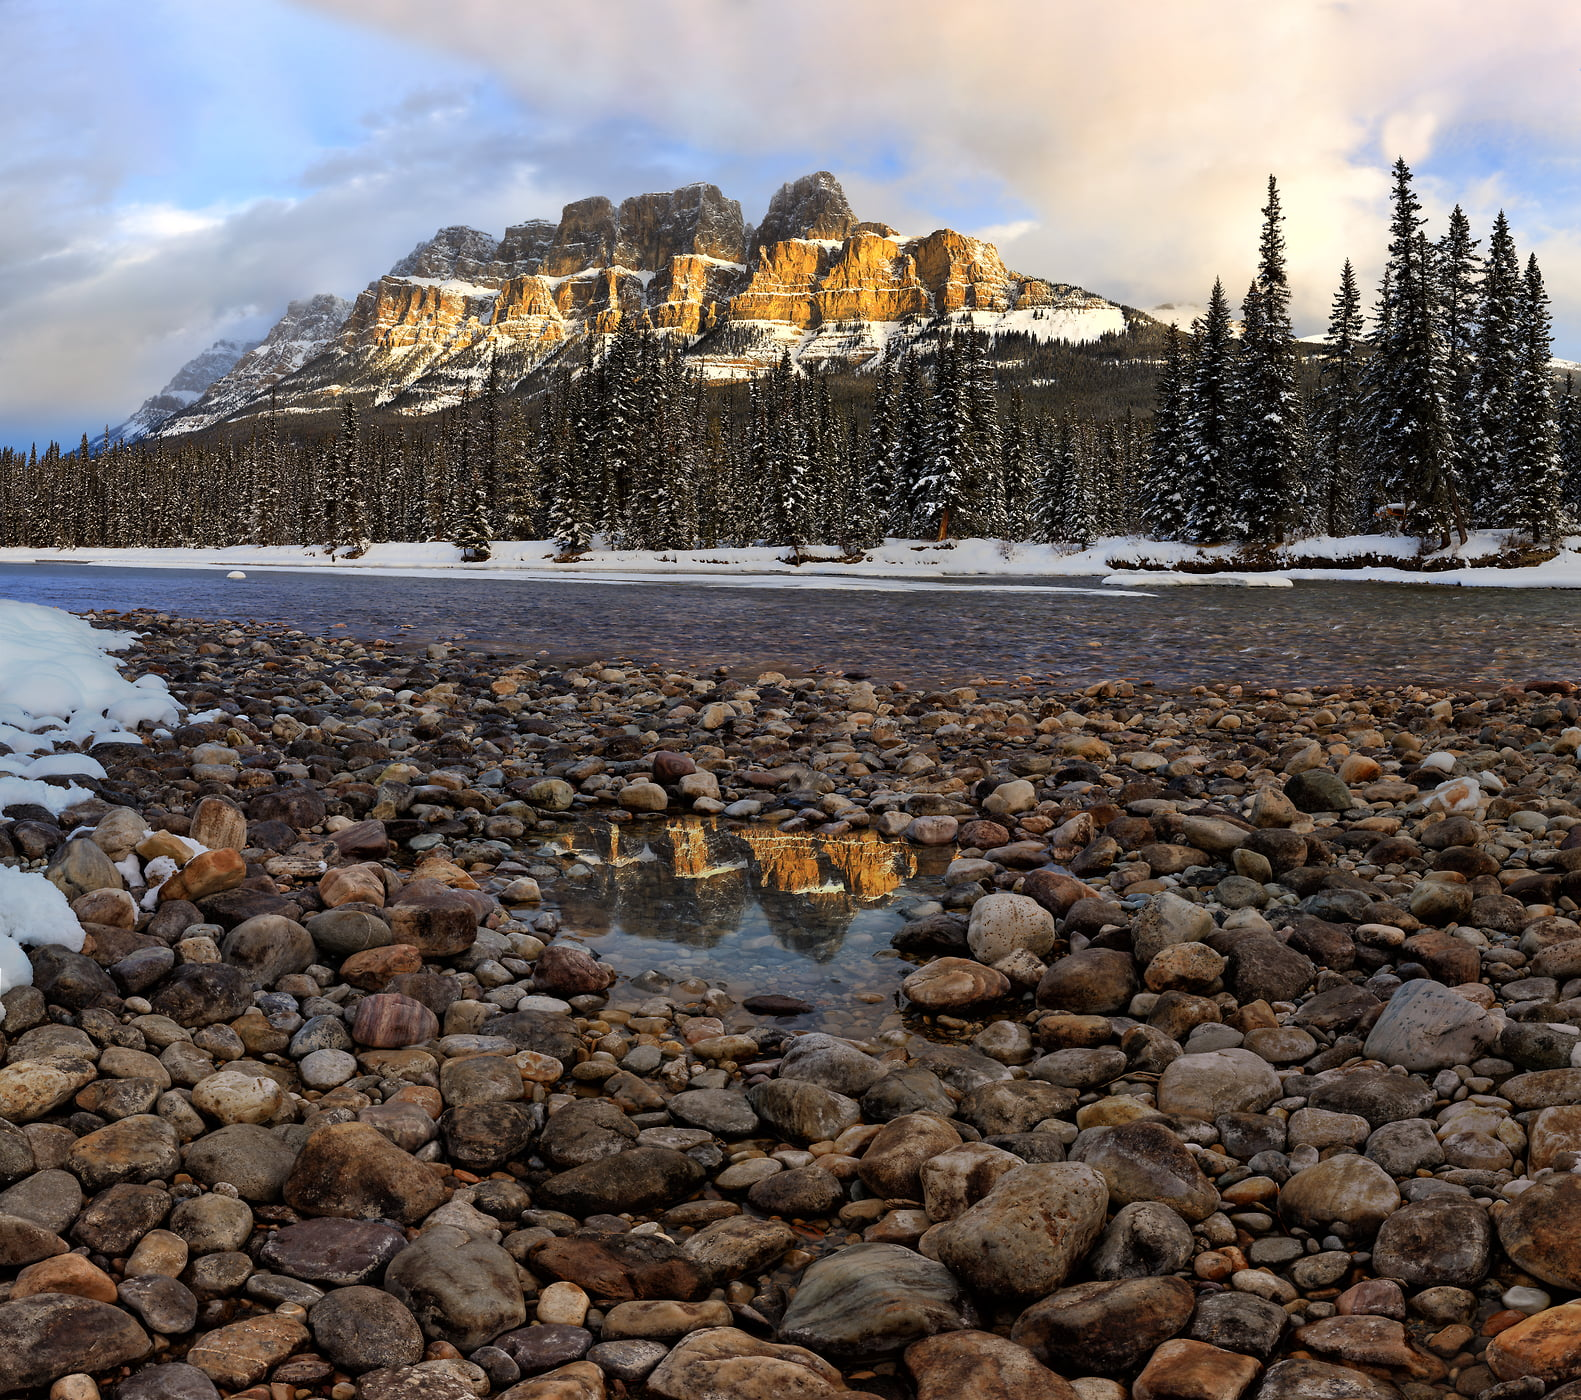 1,123 megapixels! A very high resolution, large-format VAST photo print of a stream with rocks on the side, backdropped by a snowy forest and large mountain range with Castle Mountain; landscape photograph created by Scott Dimond in Banff National Park, Alberta, Canada